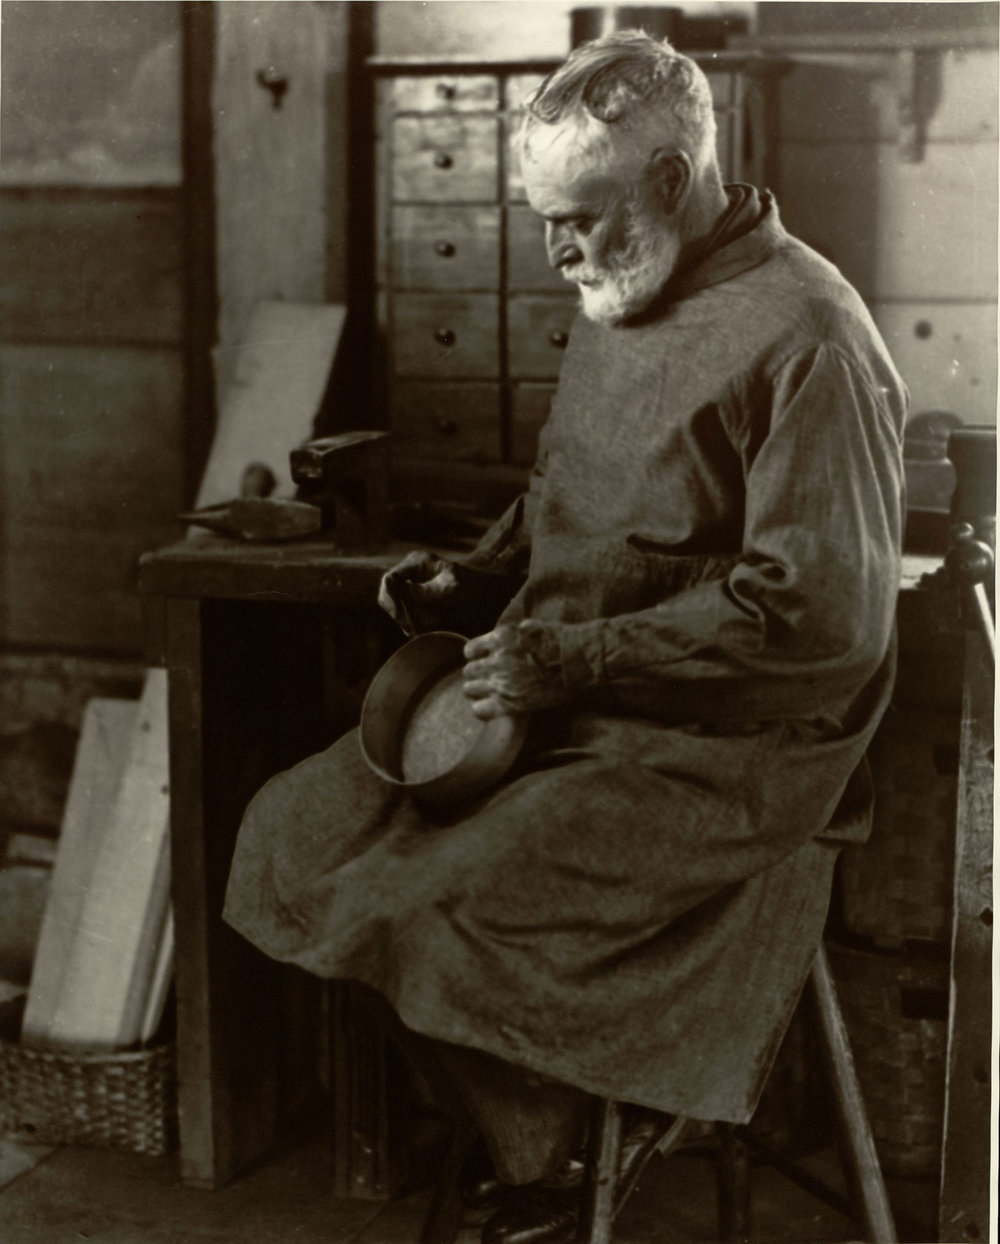 SHAKER BROTHER RICARDO BELDEN MAKING WOODEN OVAL BOXES IN A WORKSHOP AT THE HANCOCK SHAKER VILLAGE, NEAR PITTSFIELD, MASSACHUSETTS (PHOTO BY SAMUEL KRAVITT, COURTESY LIBRARY OF CONGRESS PRINTS AND PHOTOGRAPHS DIVISION, VIA  WIKIPEDIA )